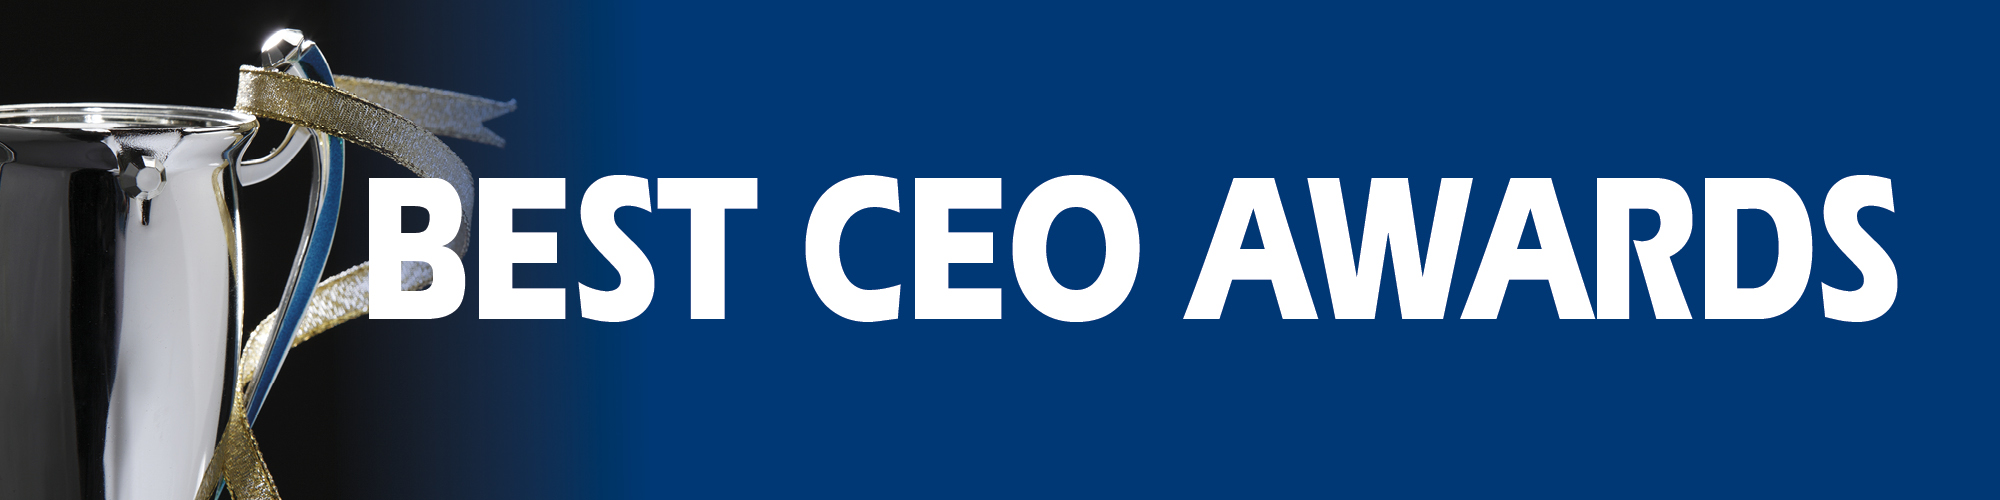 CEO AWARDS 2017 banner